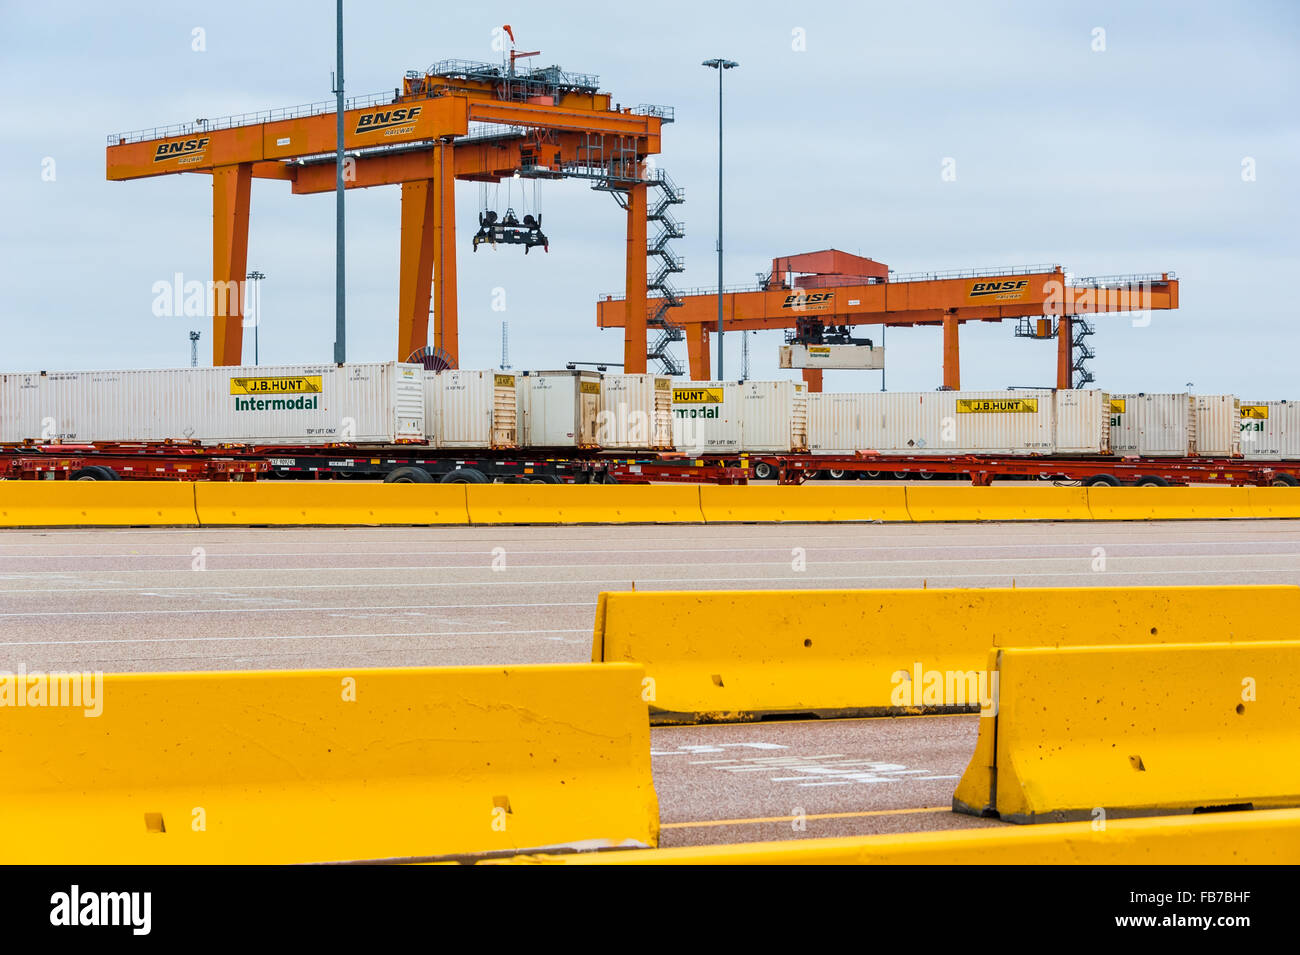 BNSF Intermodal Railway Facility yard in Memphis, Tennessee with loading cranes. USA. - Stock Image